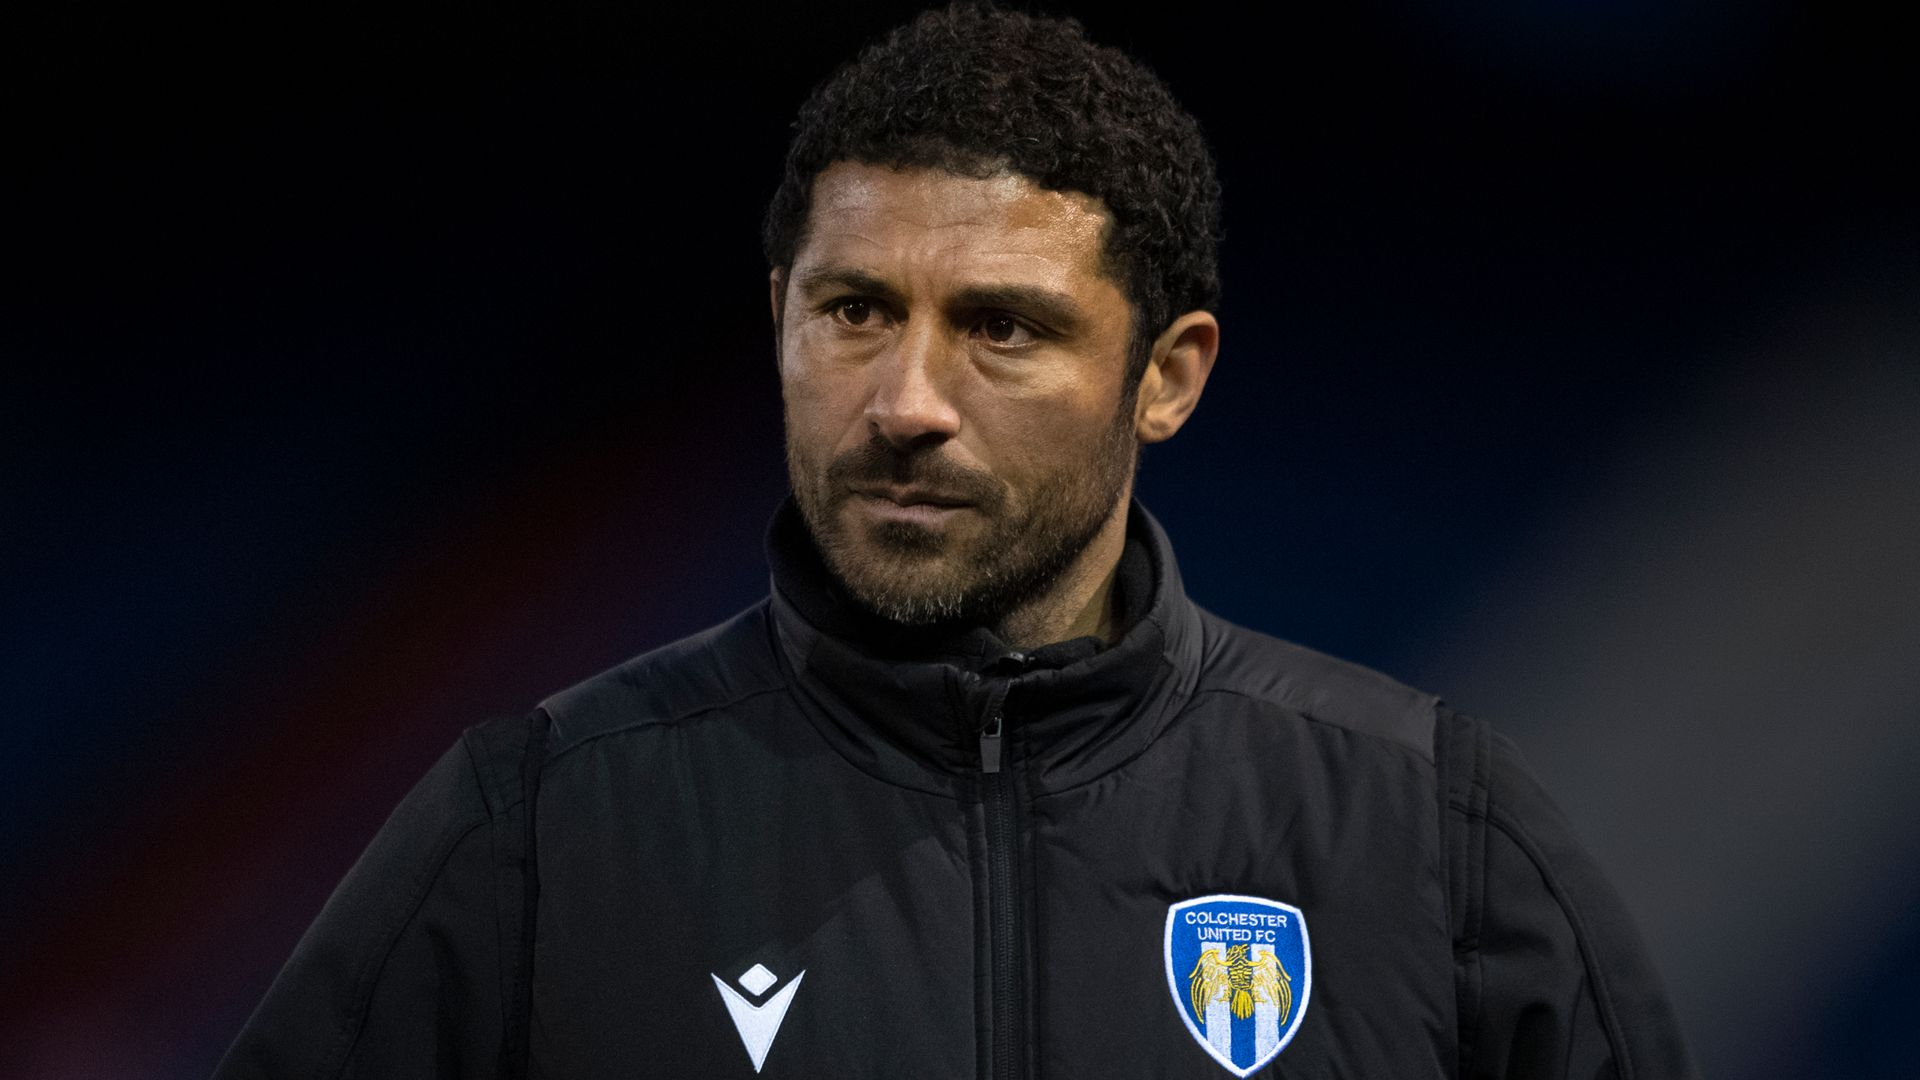 Colchester appoint Mullins as head coach after interim spell